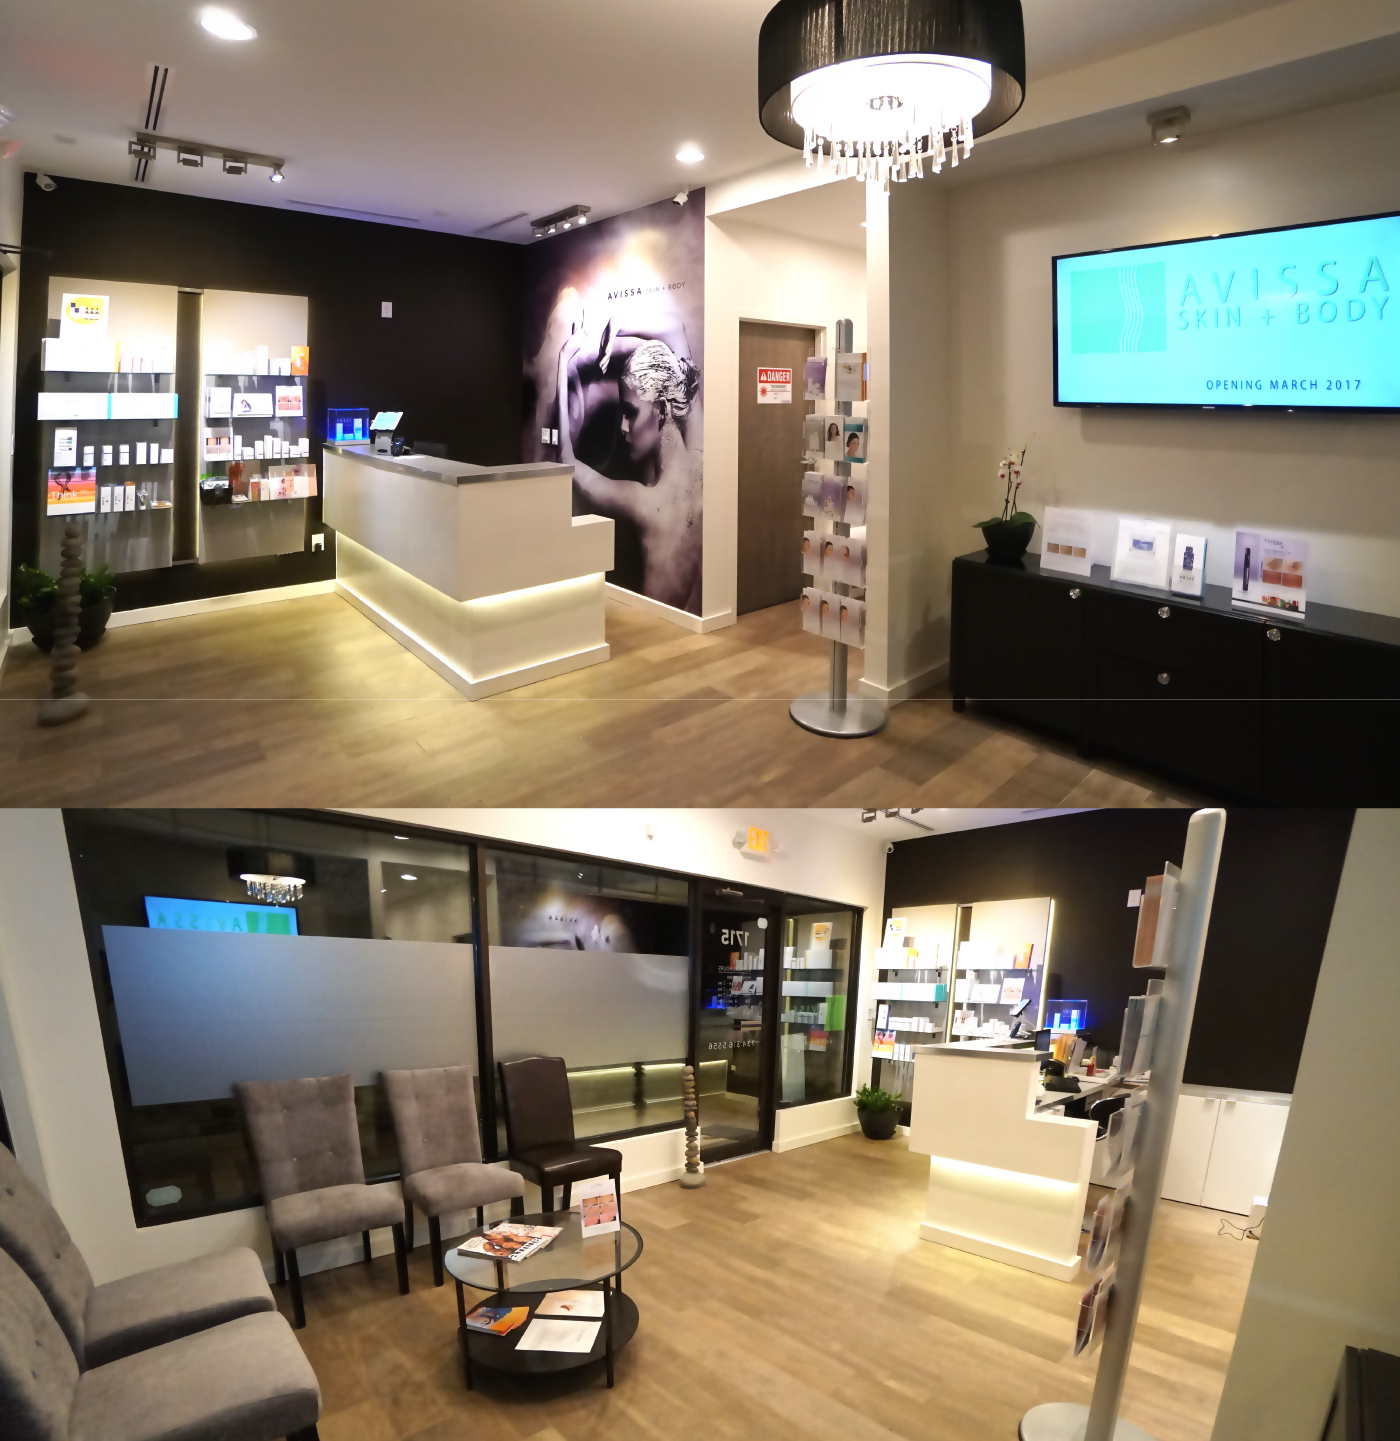 Visit your local CosmoProf Salon Supply store at Carpenter Road Ann Arbor, Michigan. With over 1, stores and salon consultants, we are the ideal source for professional hair, skin, and nail products and supplies and equipment in all categories from the top manufacturers.